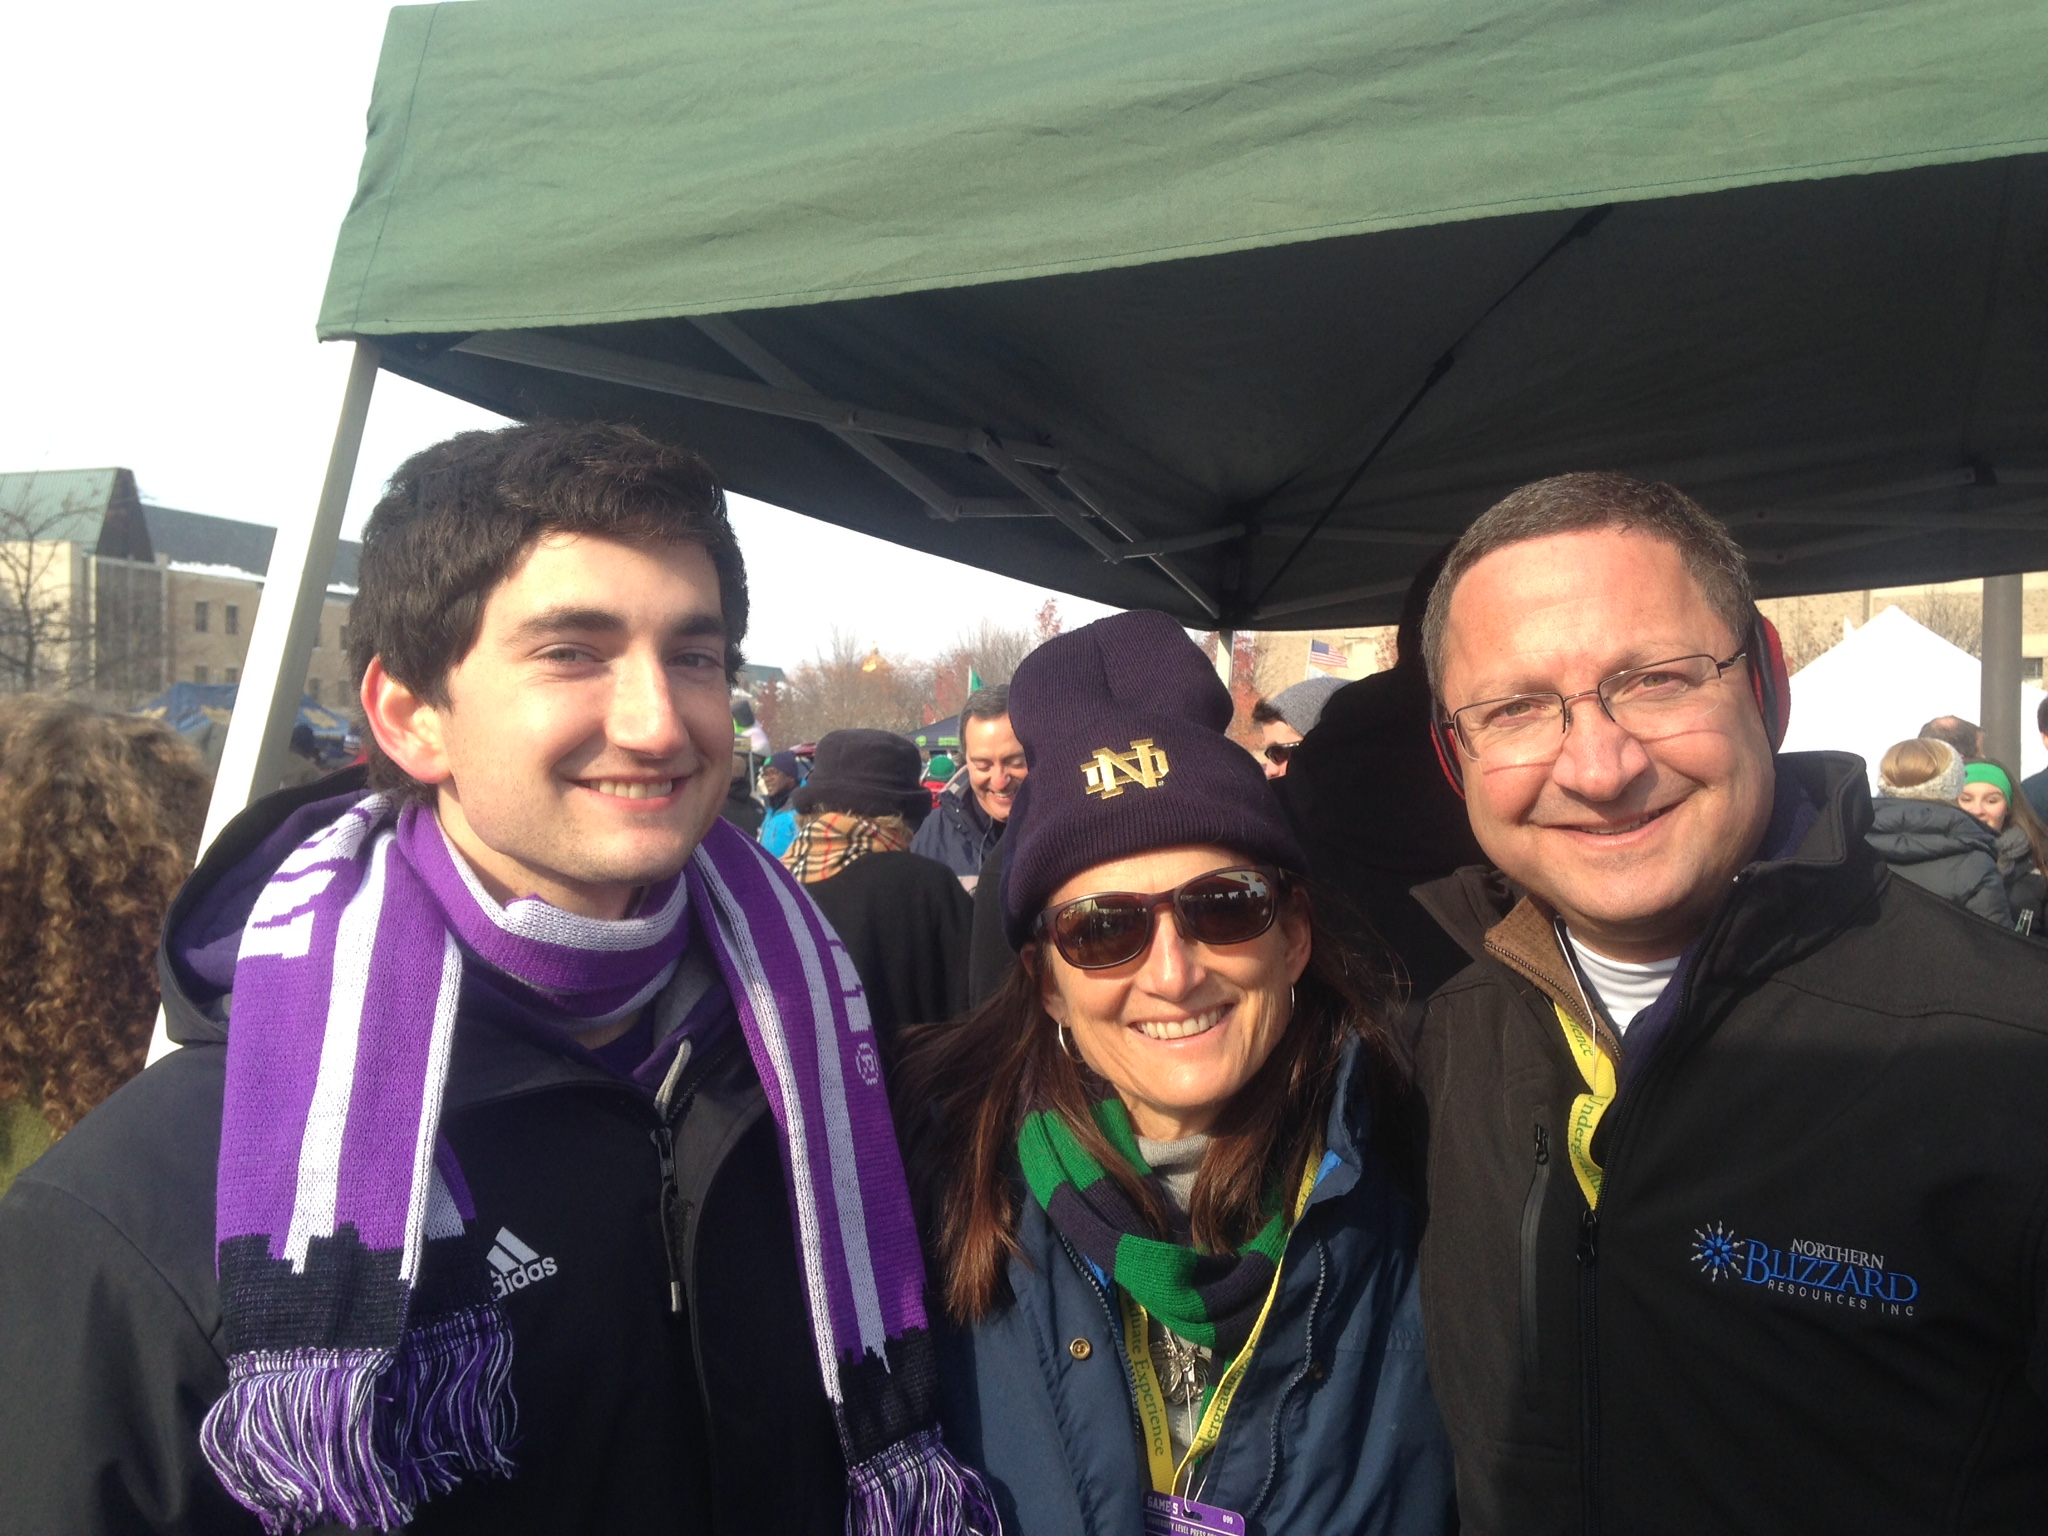 Daniel, me and my husband Ken at the tailgate